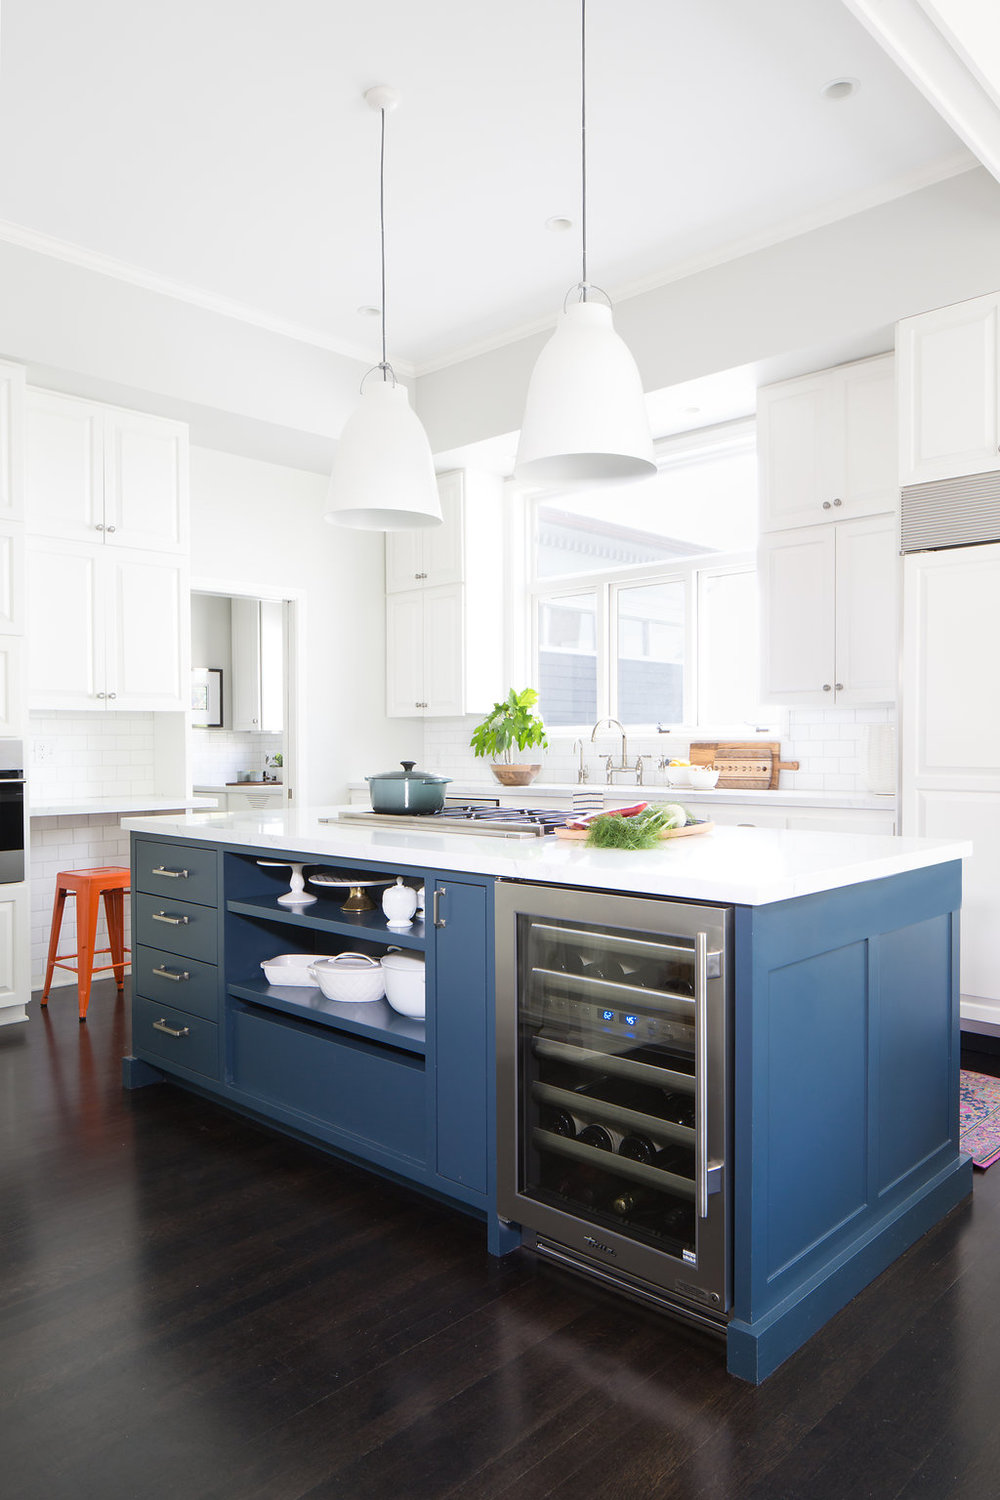 DistinctiveKitchens-Laurelhurst-6.jpg